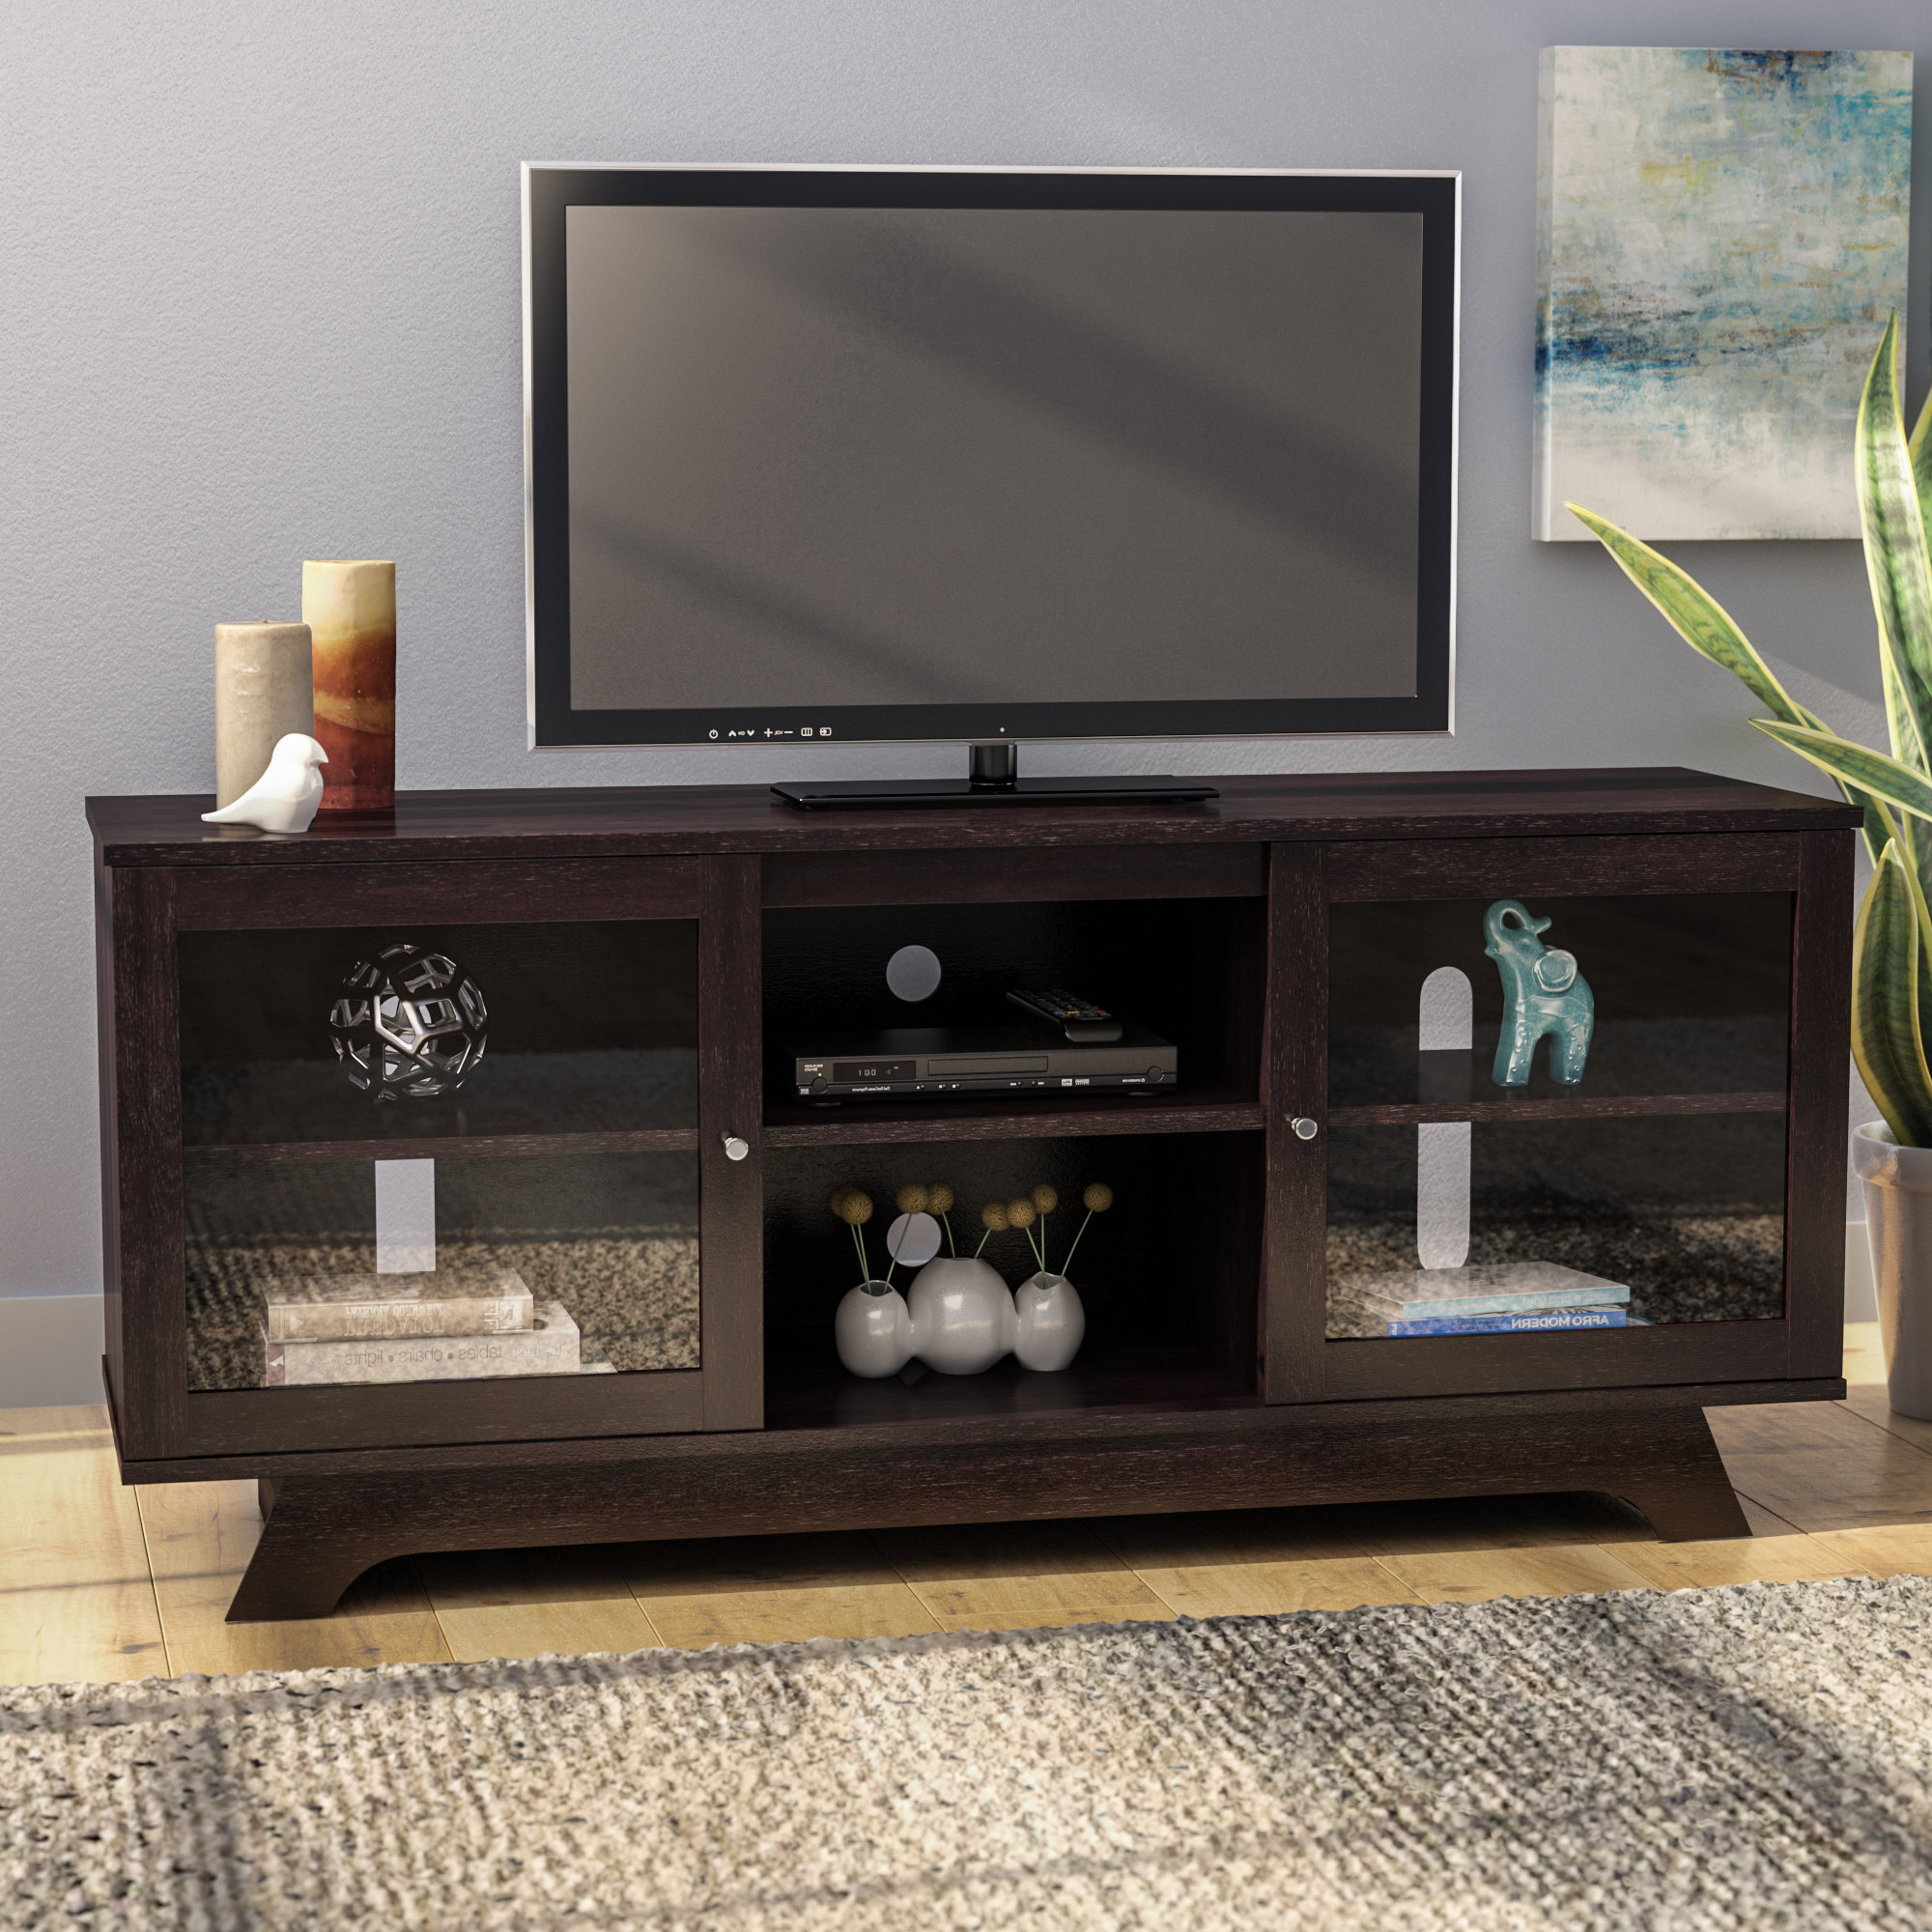 End Table And Tv Stand Set | Wayfair Regarding Combs 63 Inch Tv Stands (View 7 of 20)